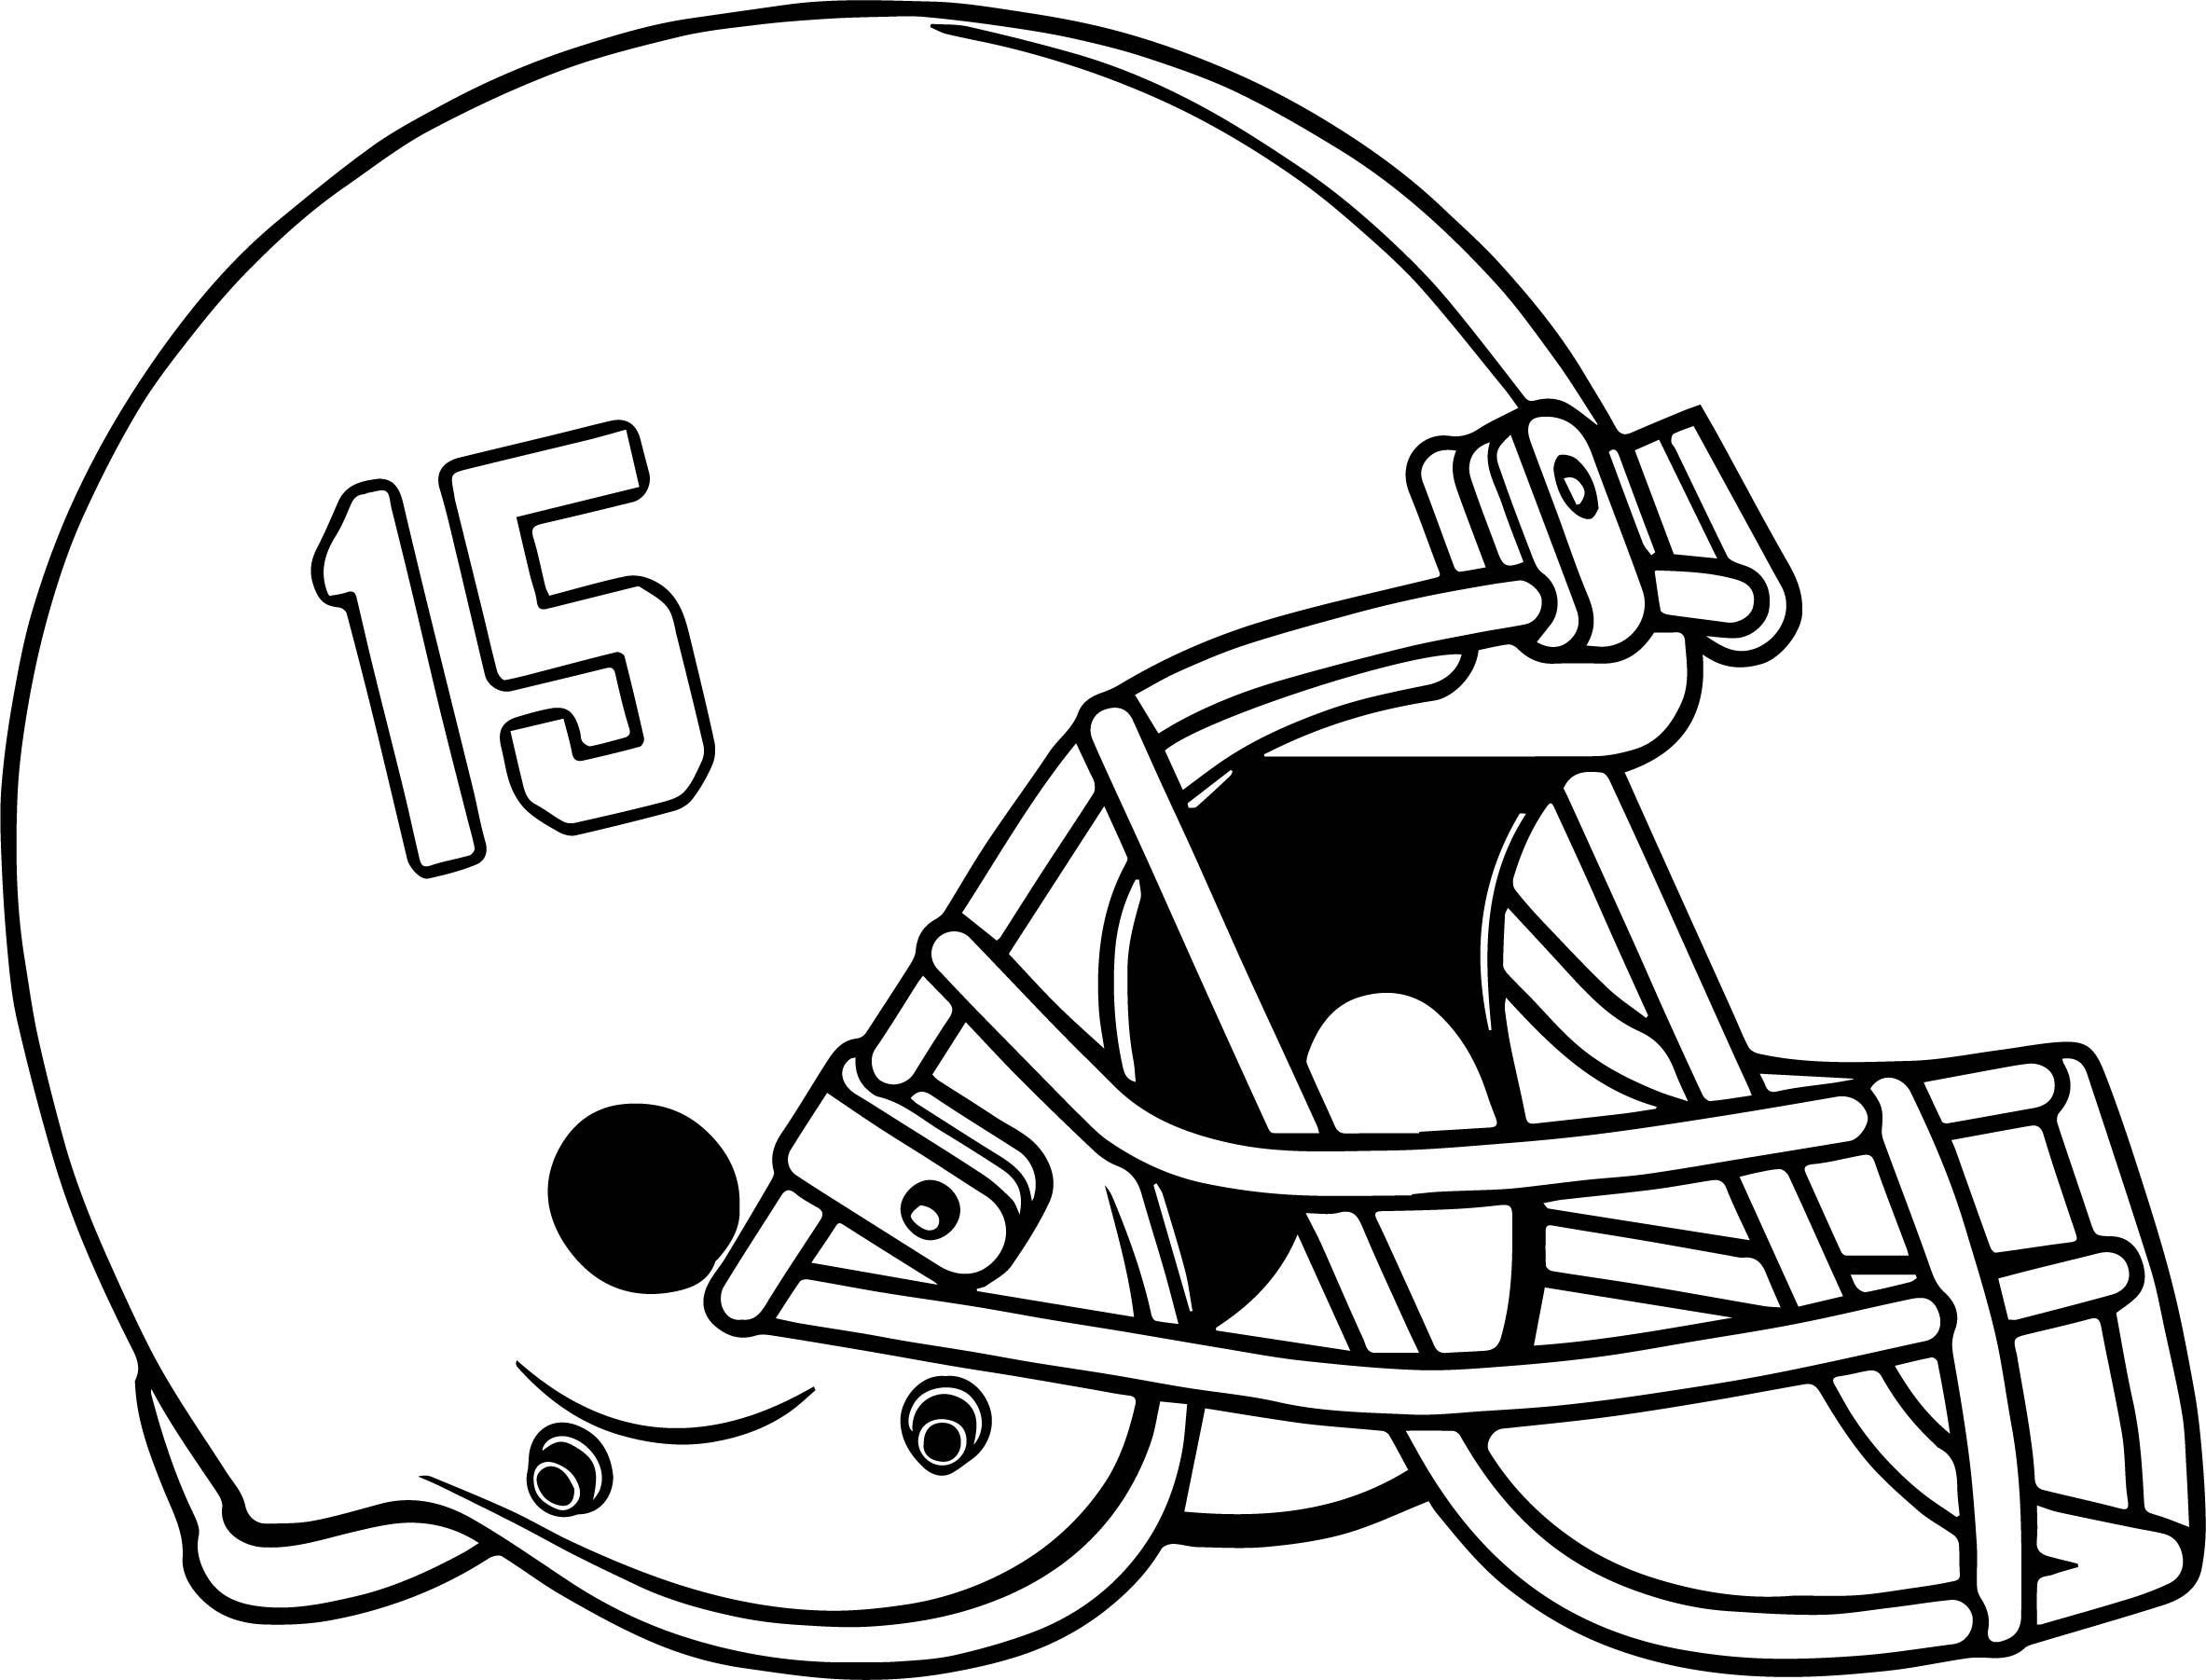 Nice Bama Alabama Helmet Fifteen Number Coloring Page Football